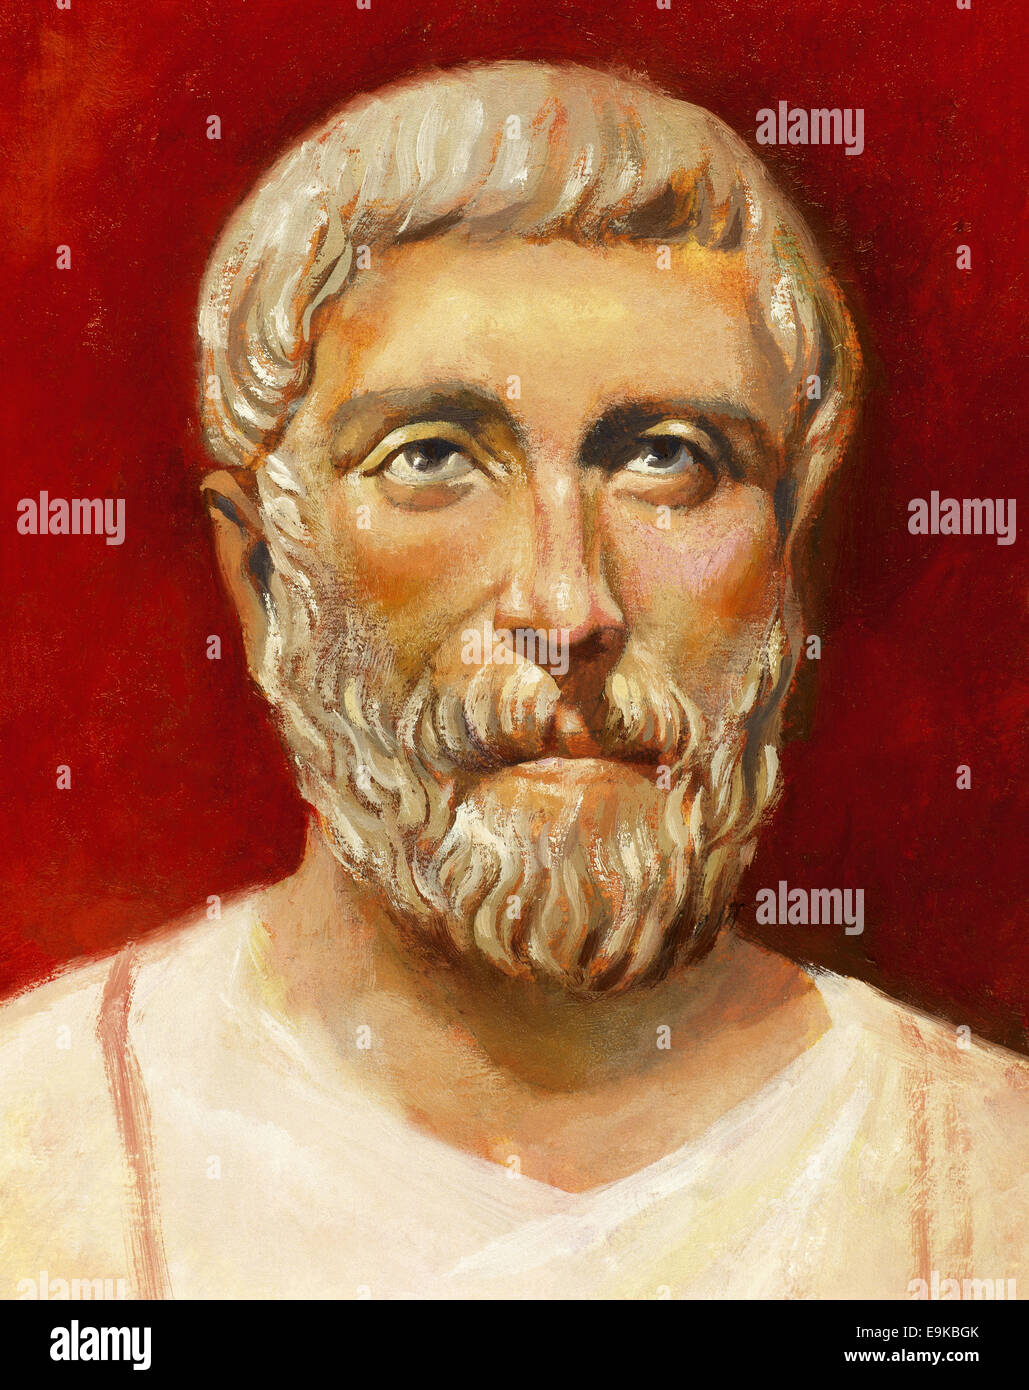 pythagoras stock photos pythagoras stock images  pythagoras of samos 570 bc 495 bc ionic greek philosopher and